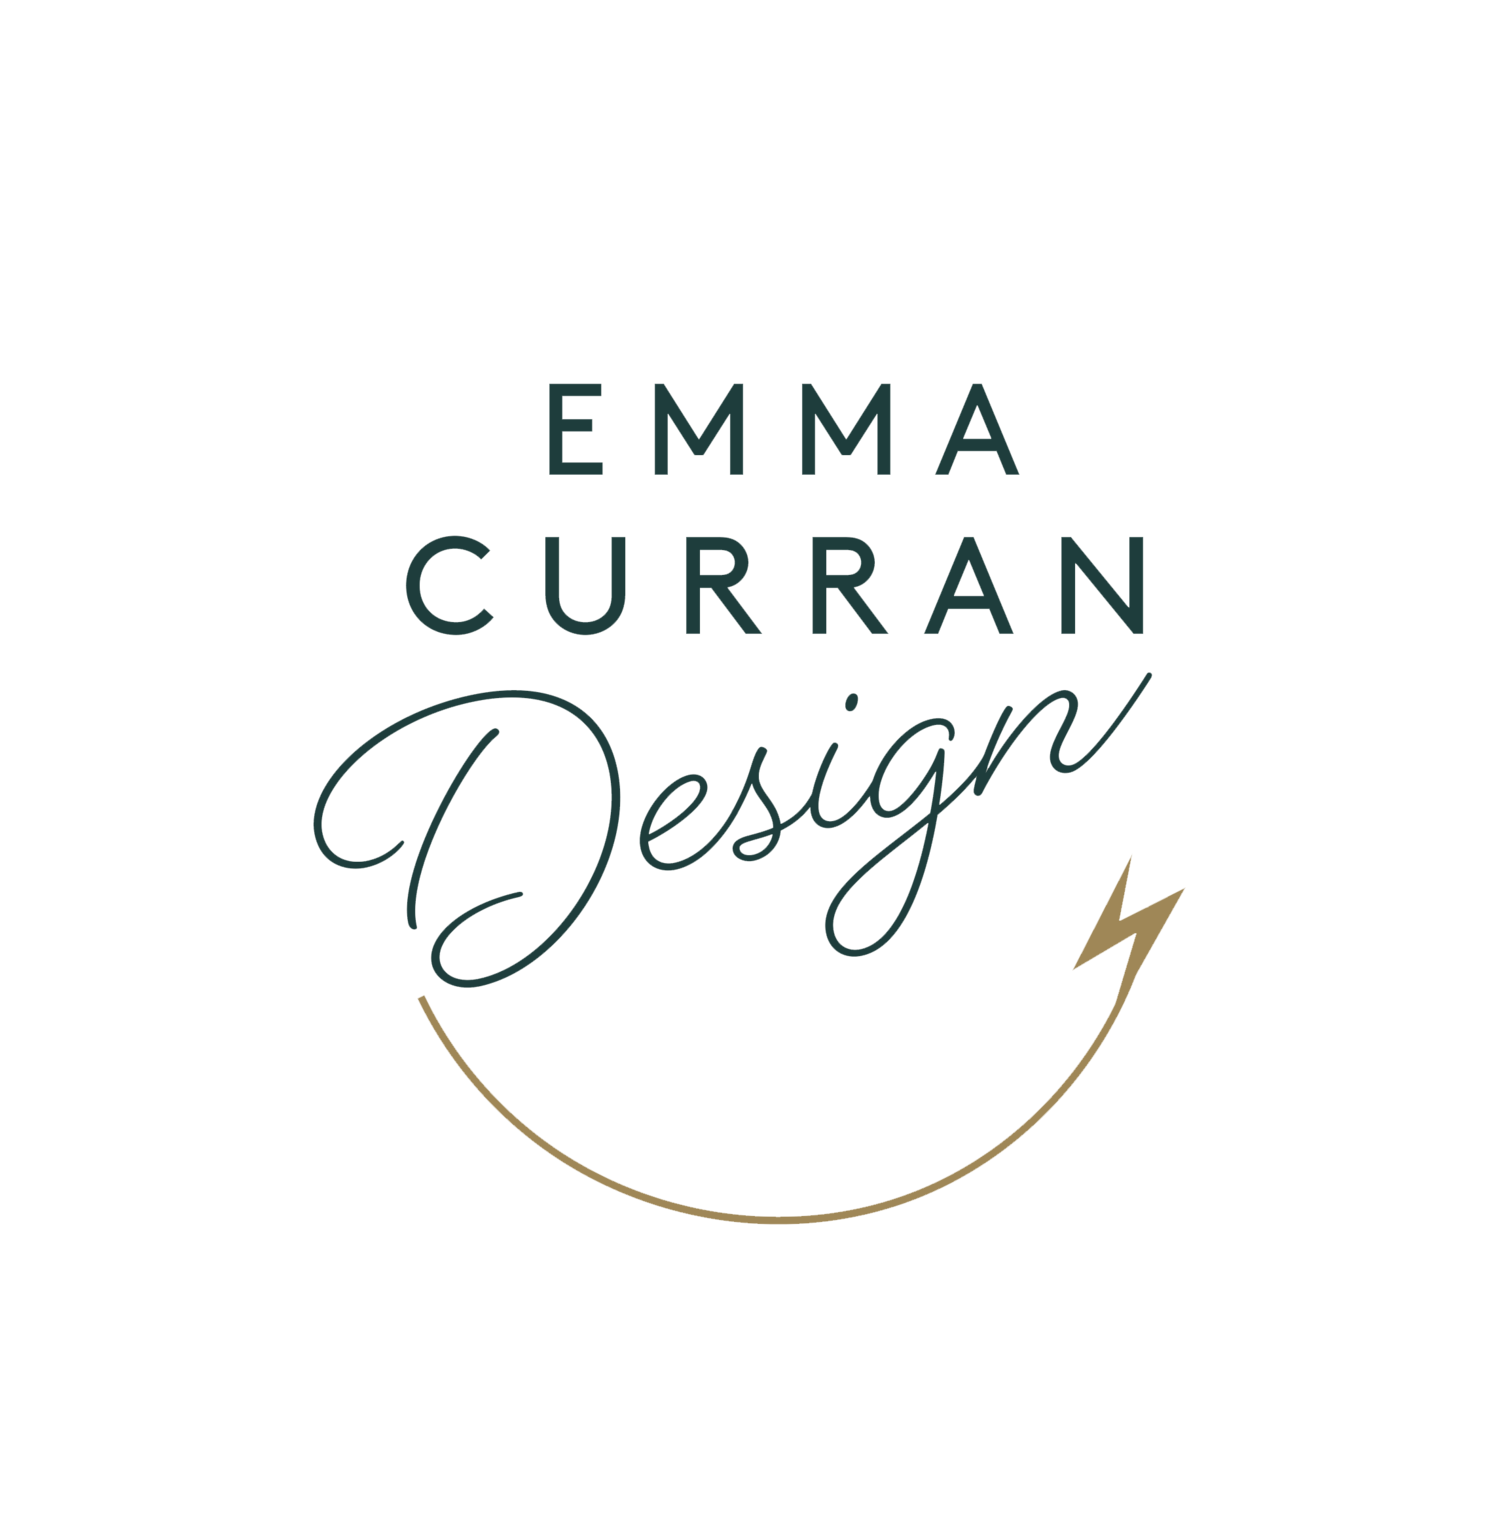 Emma Curran Design - Professional Graphic & Web Design Services, Essex, London & the UK